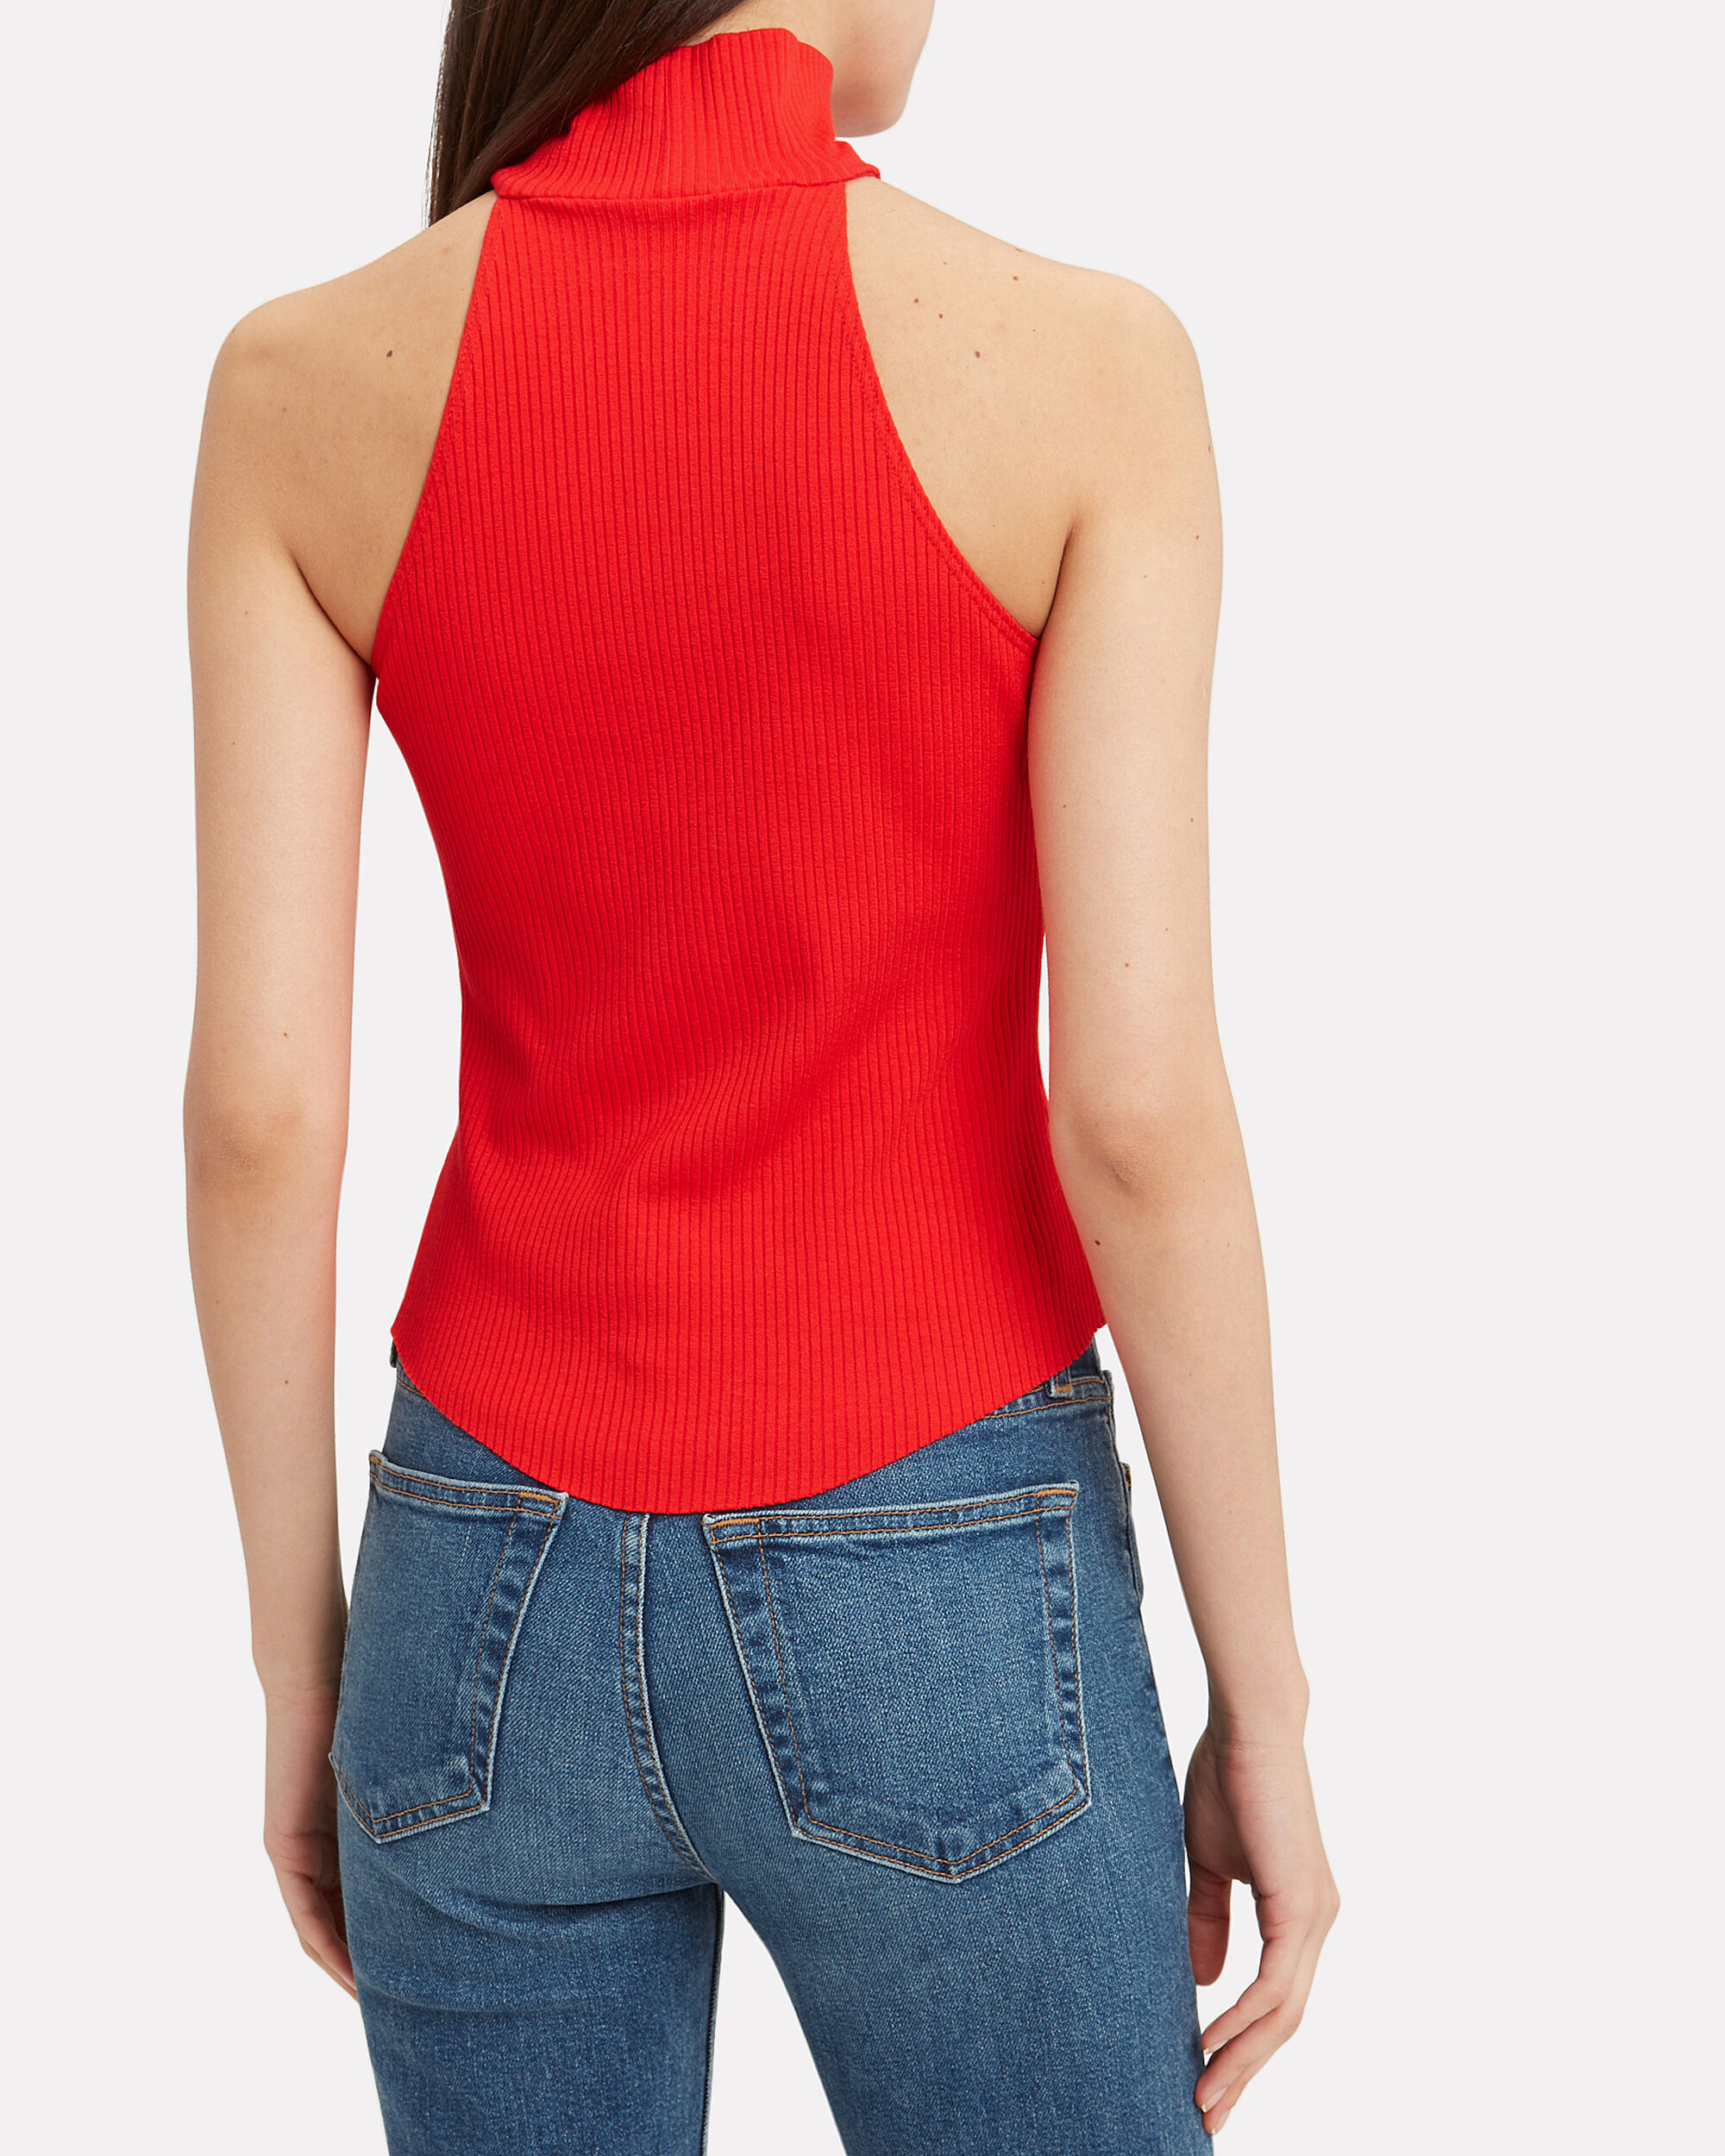 Alloy Sleeveless Turtleneck, RED, hi-res